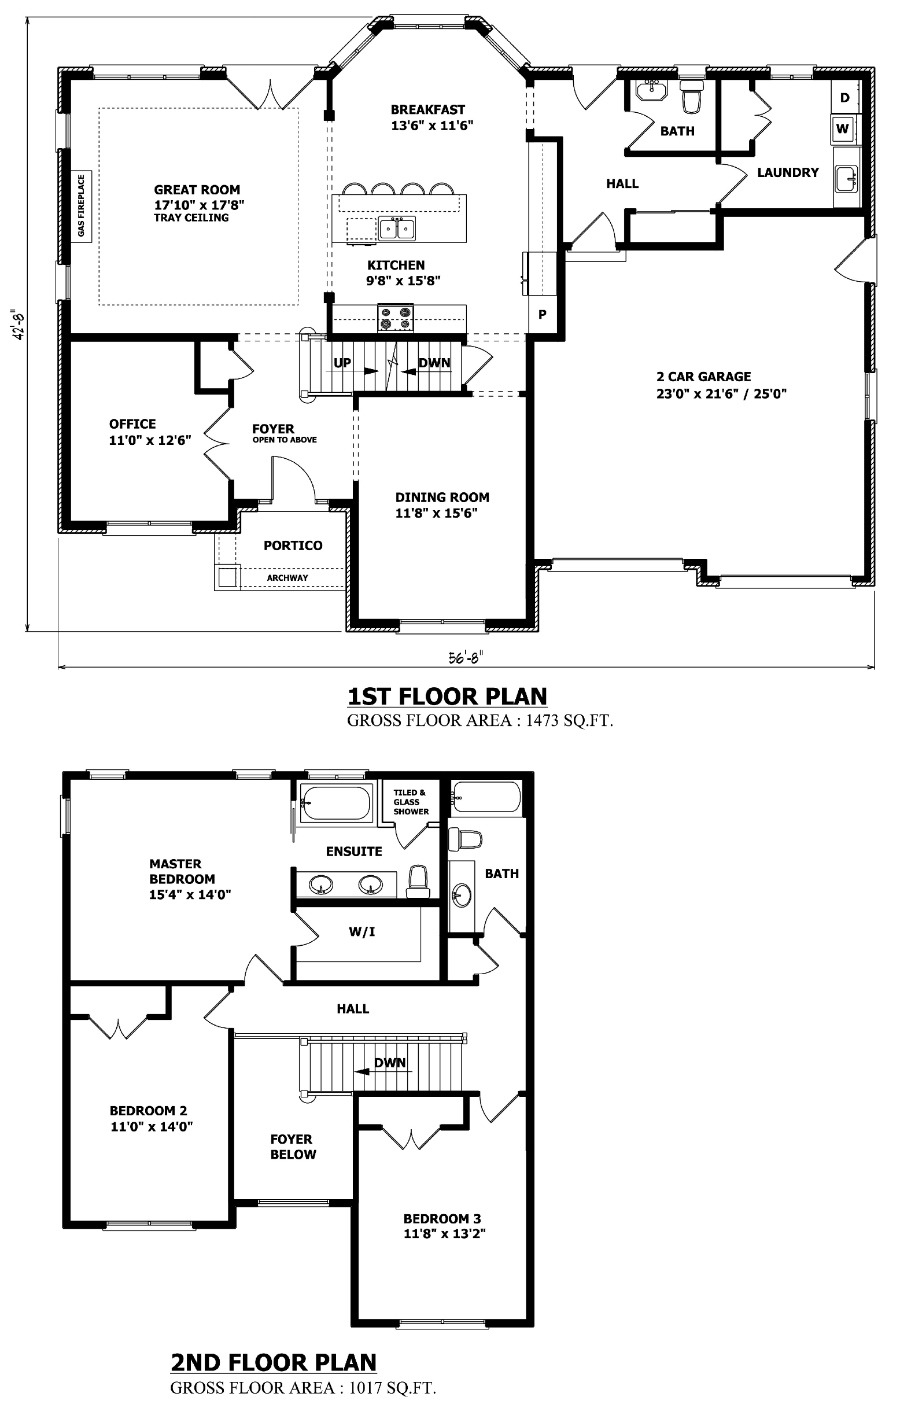 Home Building Plans Canada Luxury Shutter Line Elections Home aspx Elections Canada News